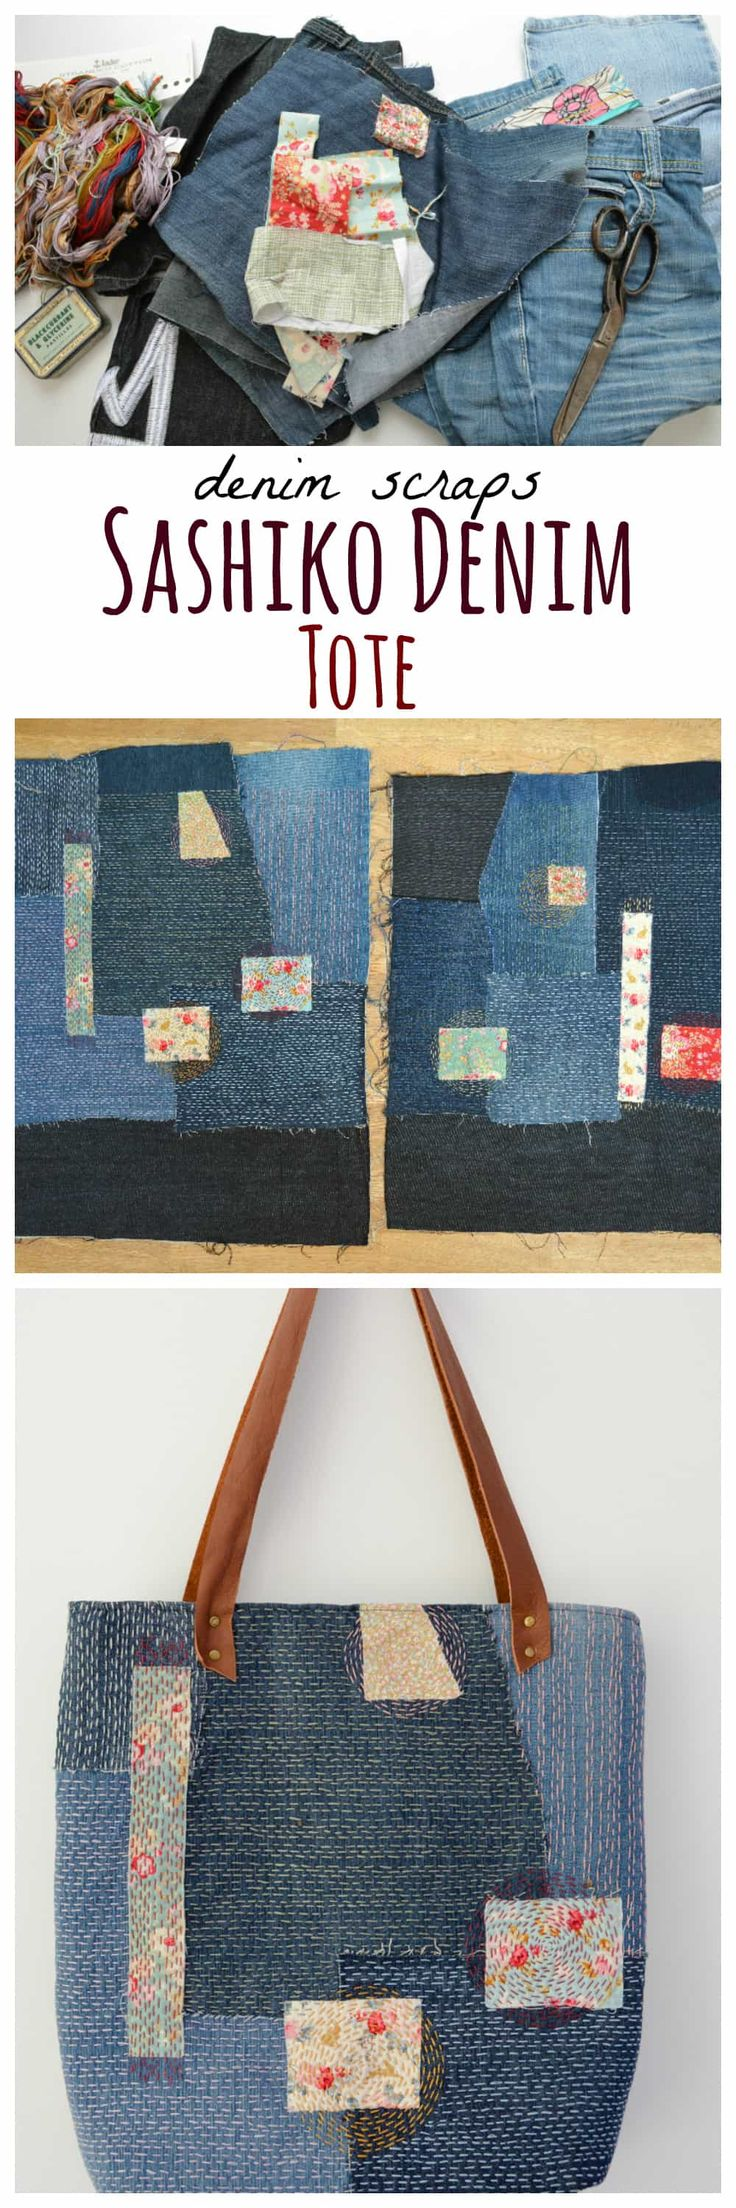 vicky myers creations » Blog Archive How to make a Sashiko Denim Tote Bag - vicky myers creations